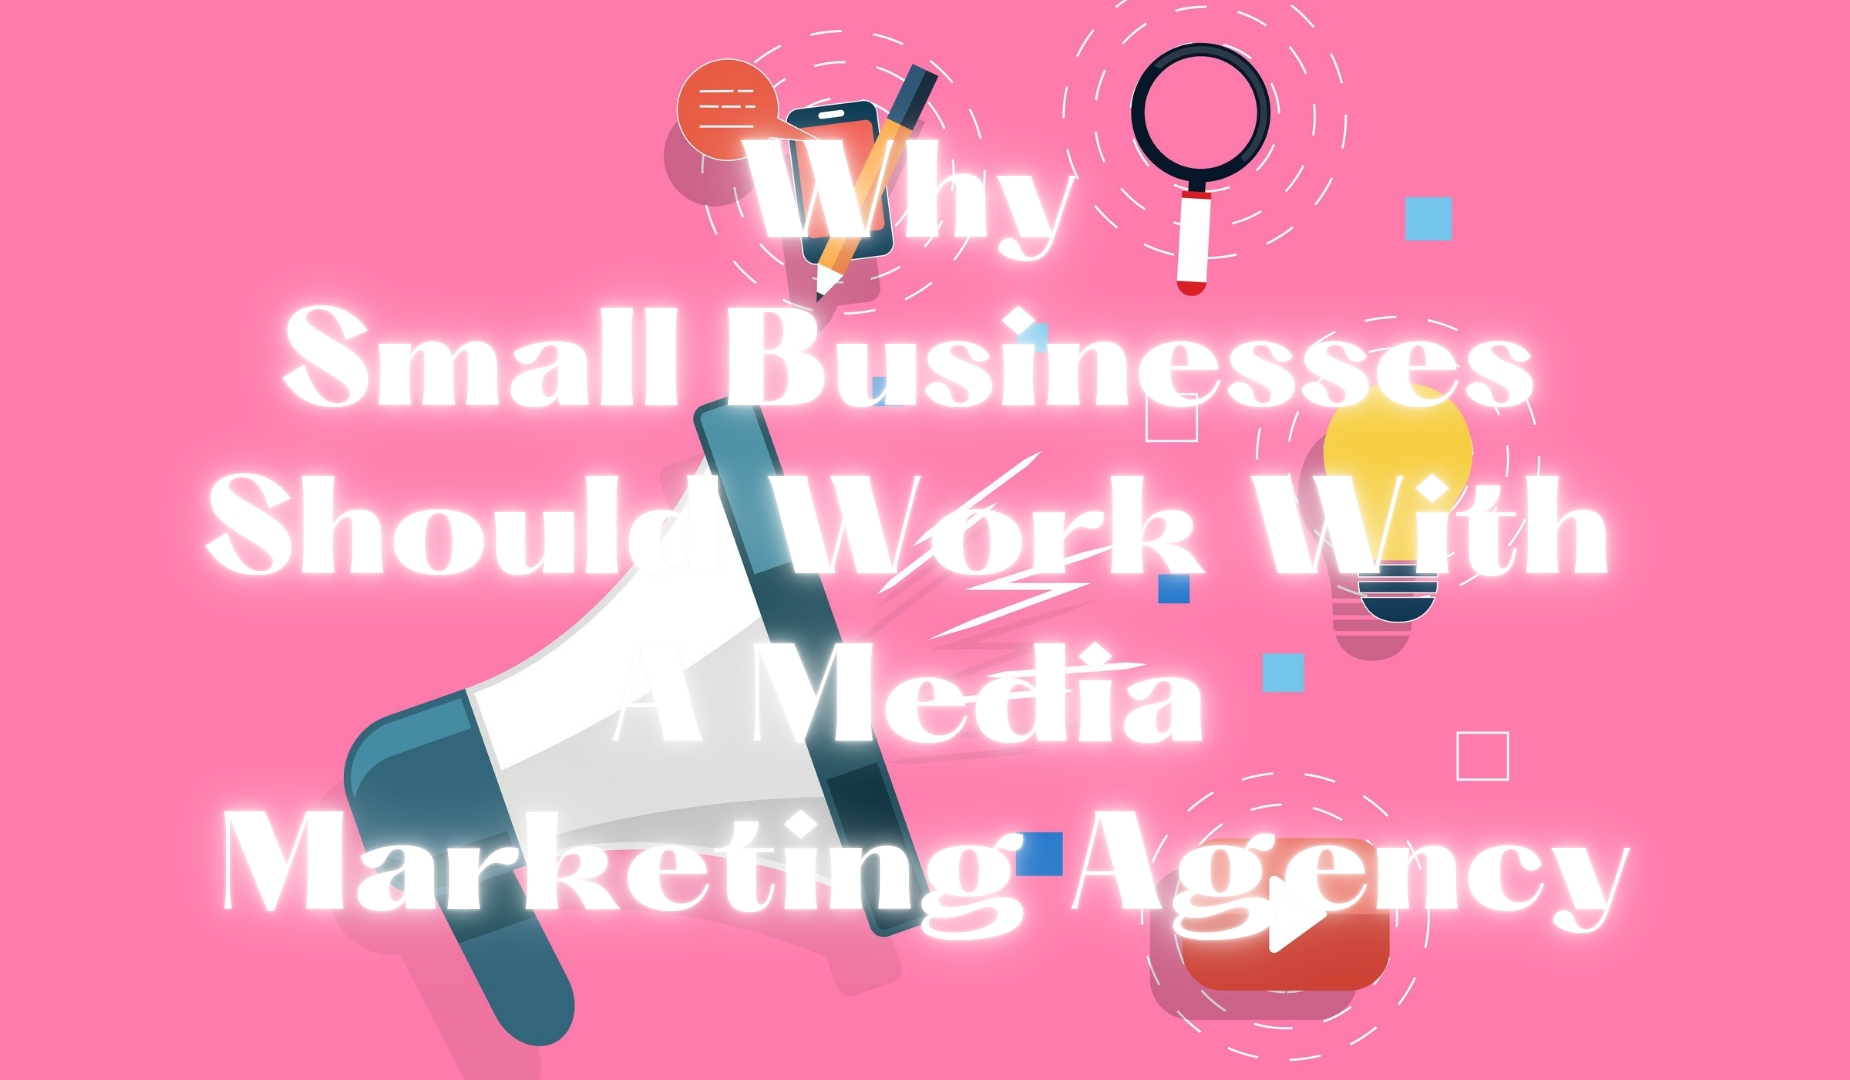 Why Small Businesses Should Work With A Media Marketing Agency